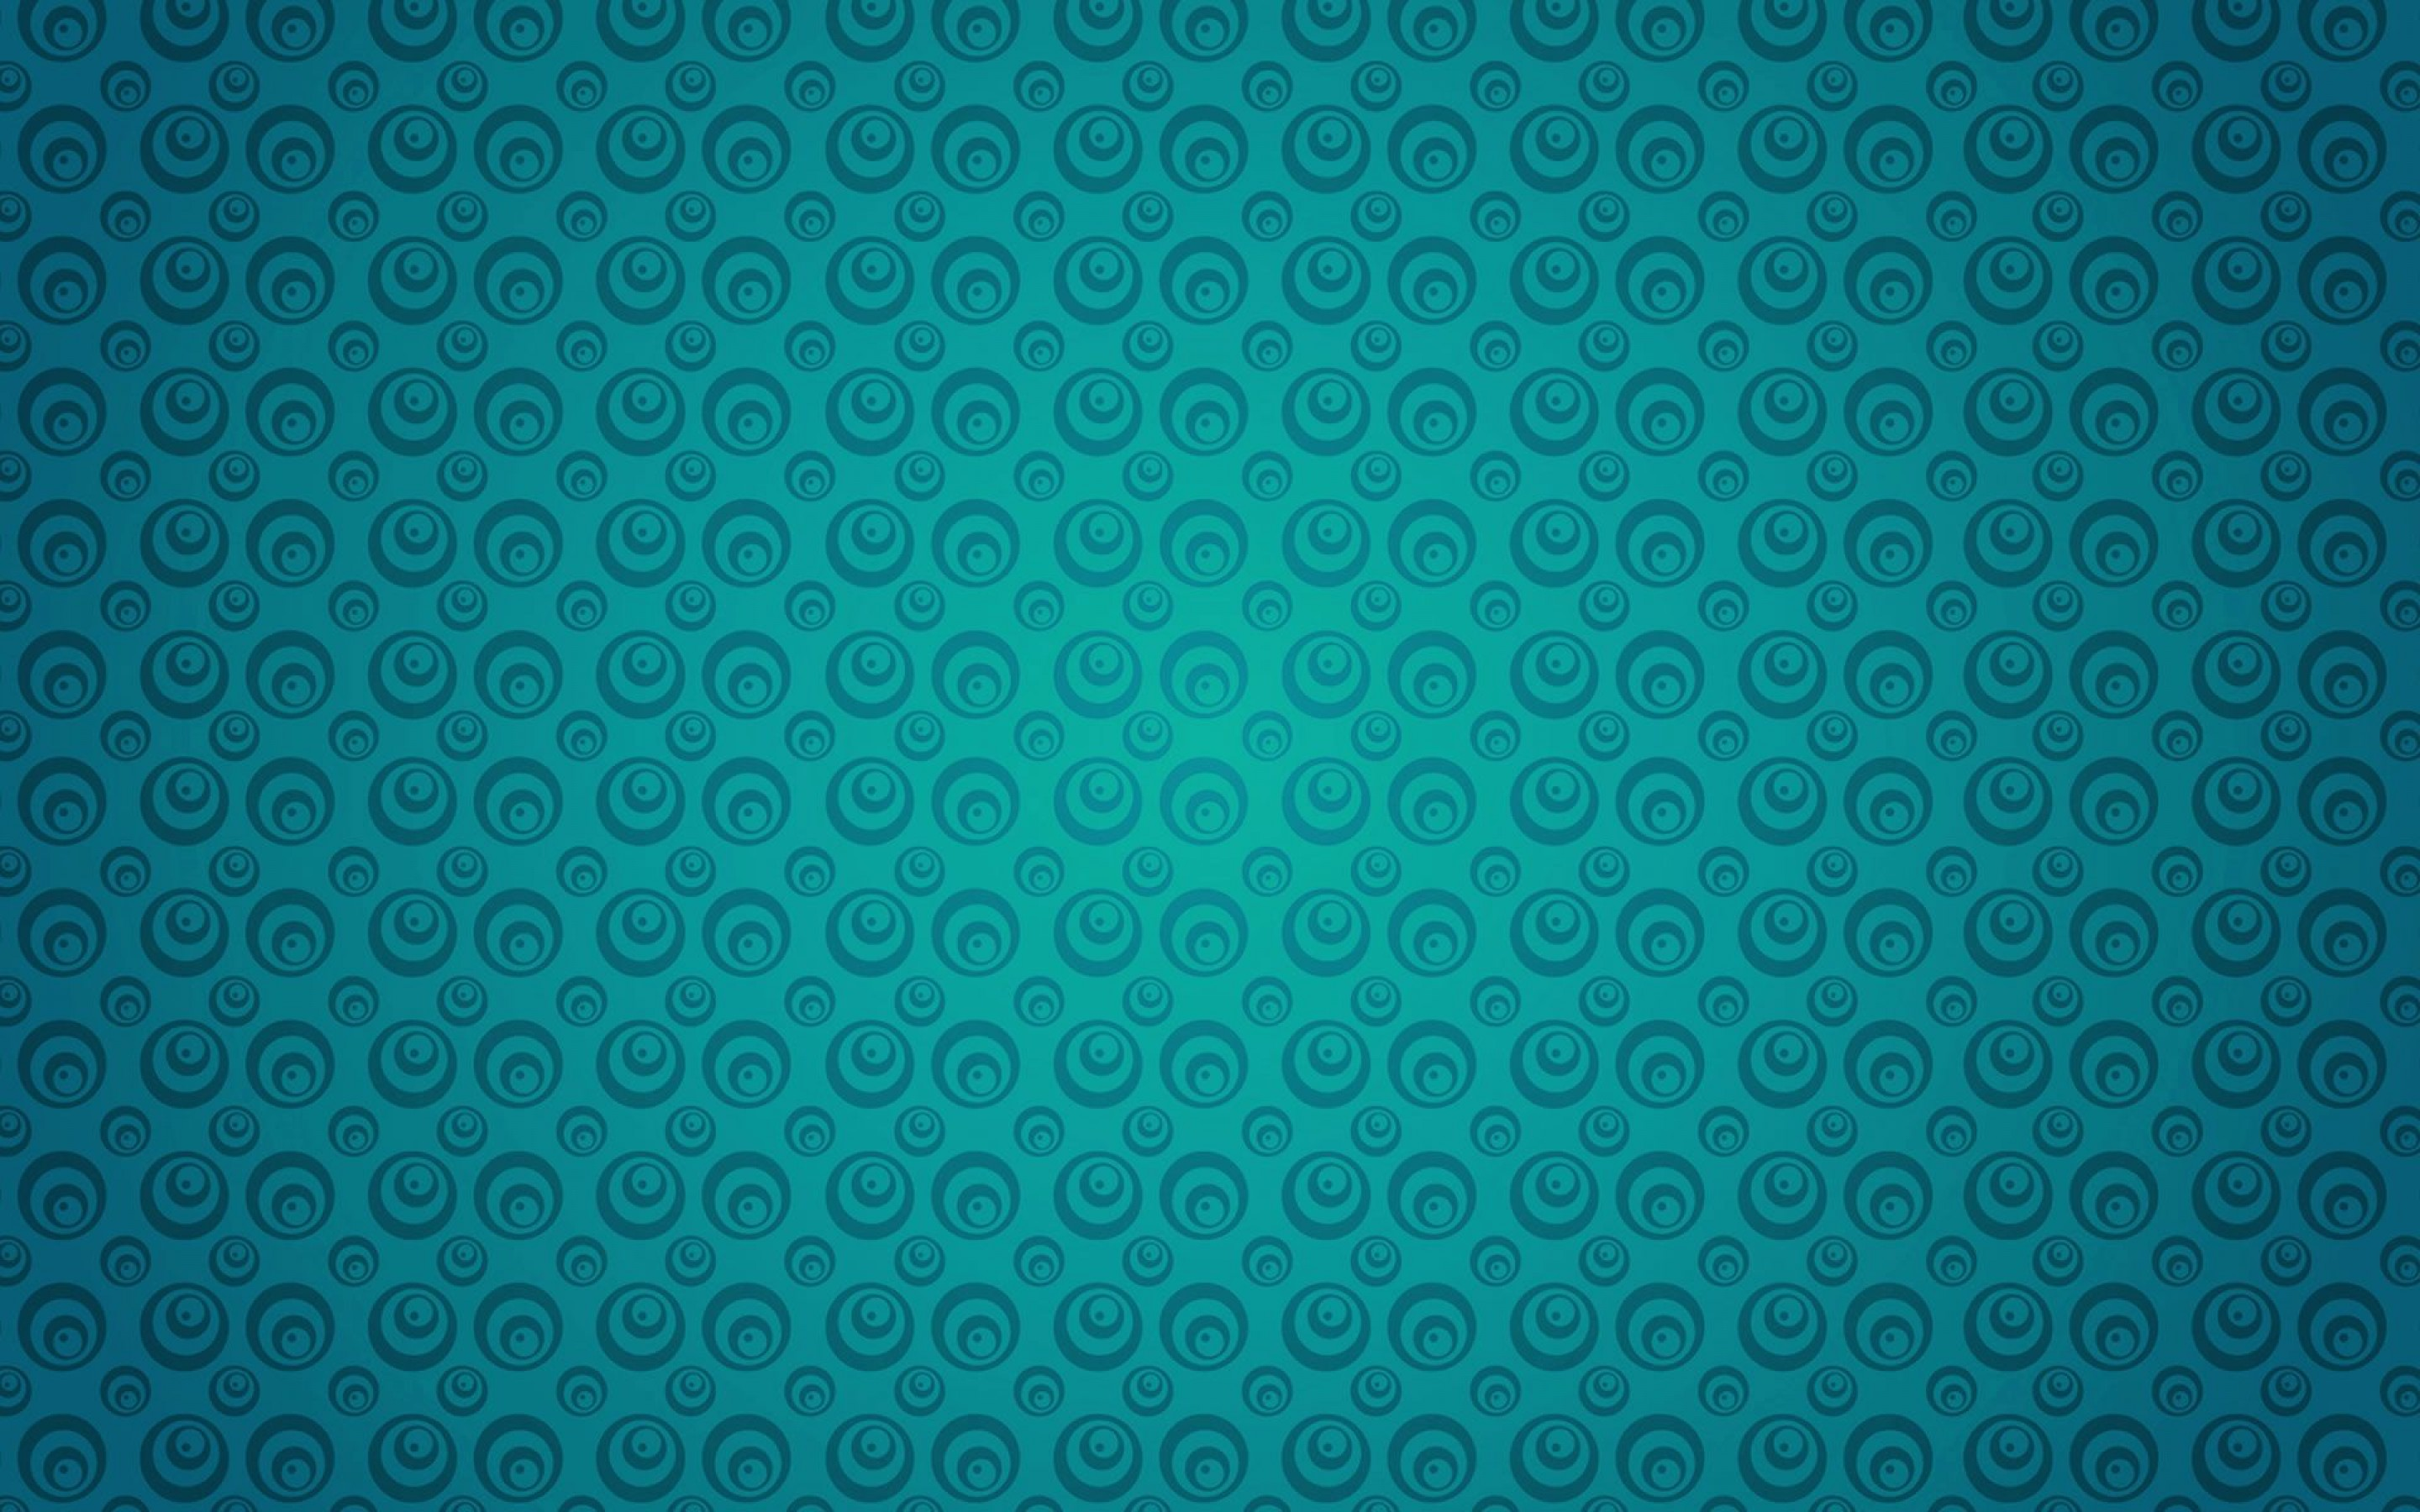 Textured Wallpaper 14